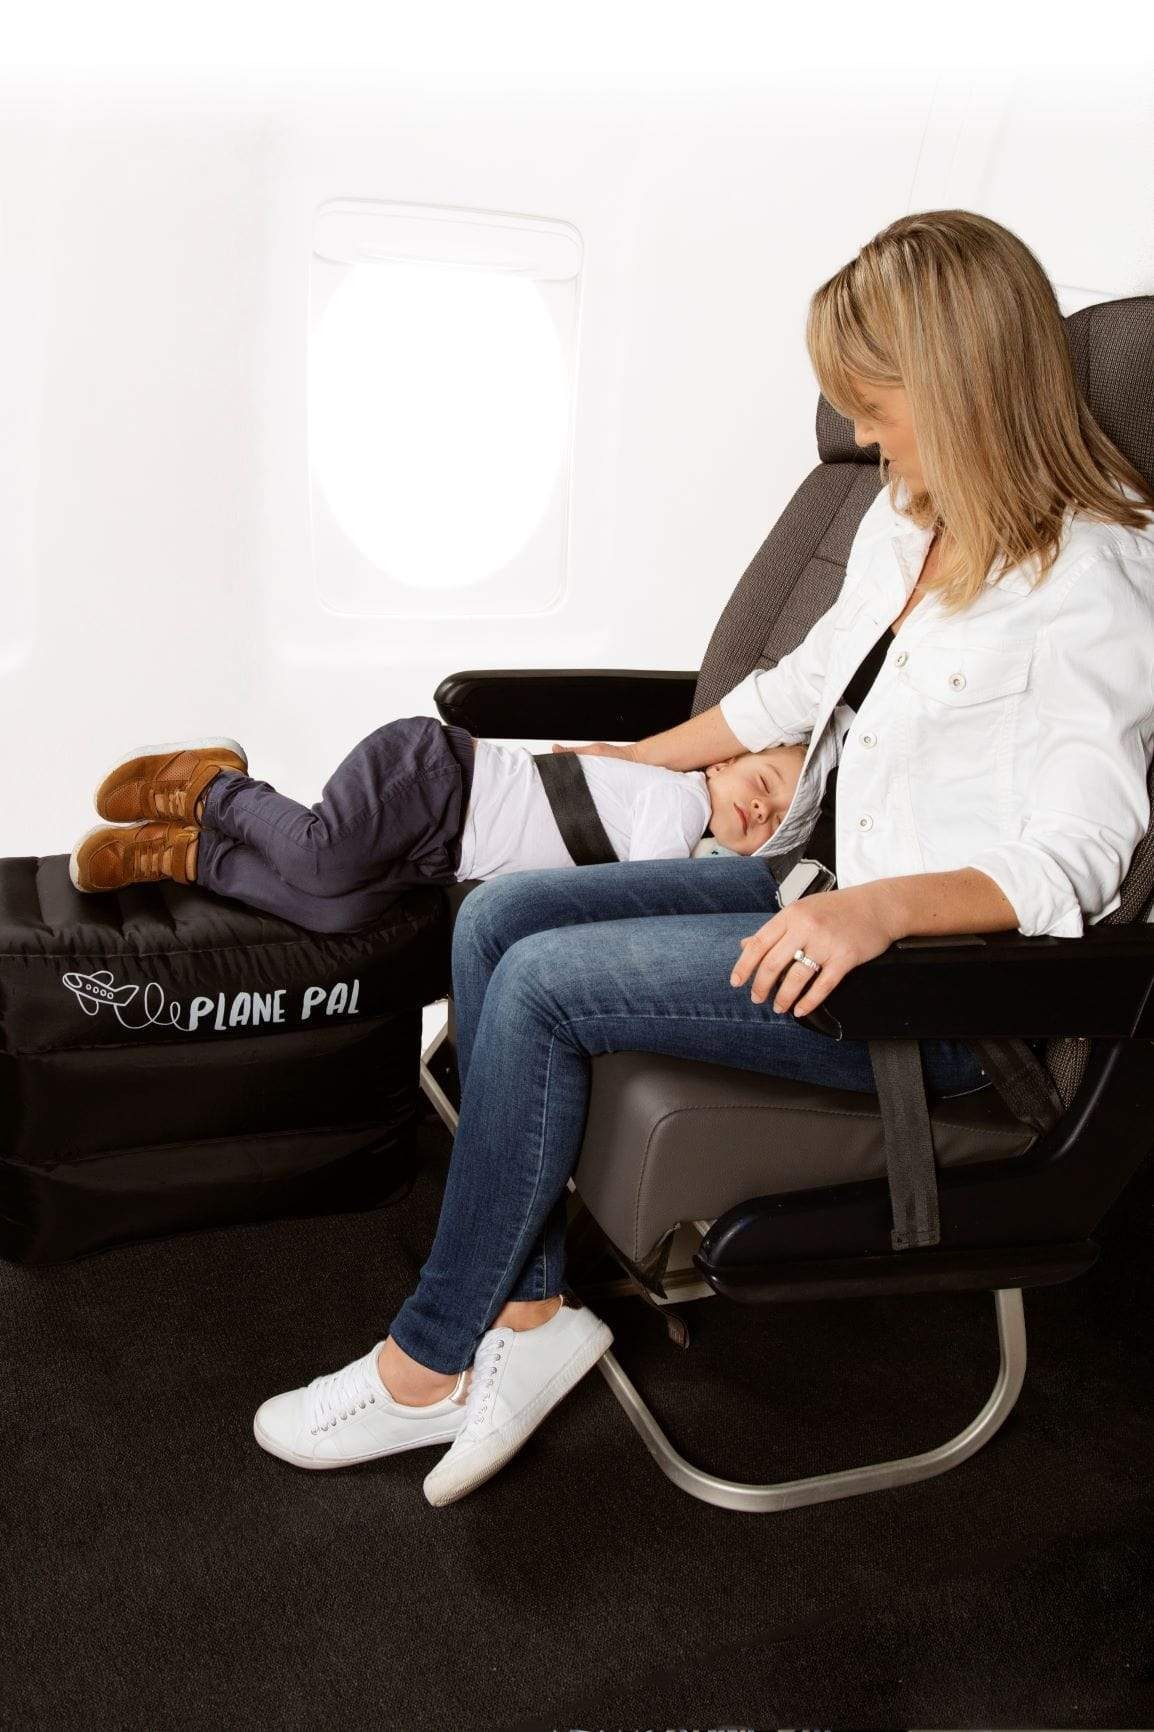 Cool Plane Pal The Airplane Seat Extender Full Kit With Pump Machost Co Dining Chair Design Ideas Machostcouk